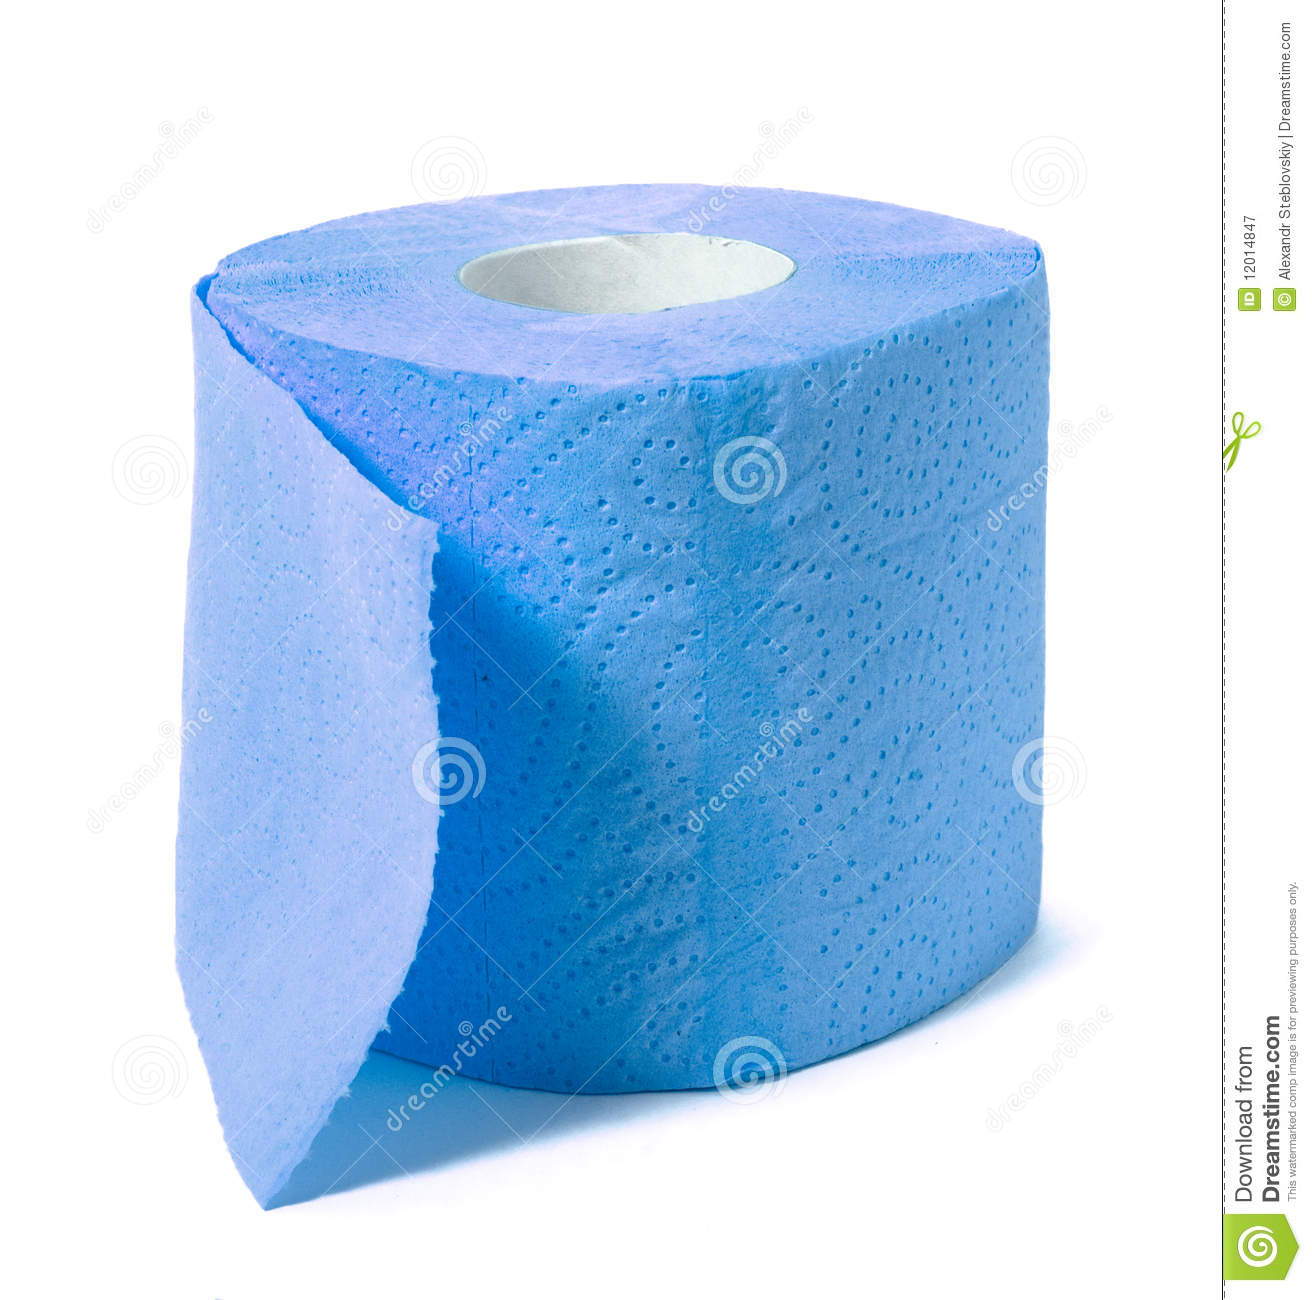 Blue Toilet Paper Stock Image Image Of Isolated Object